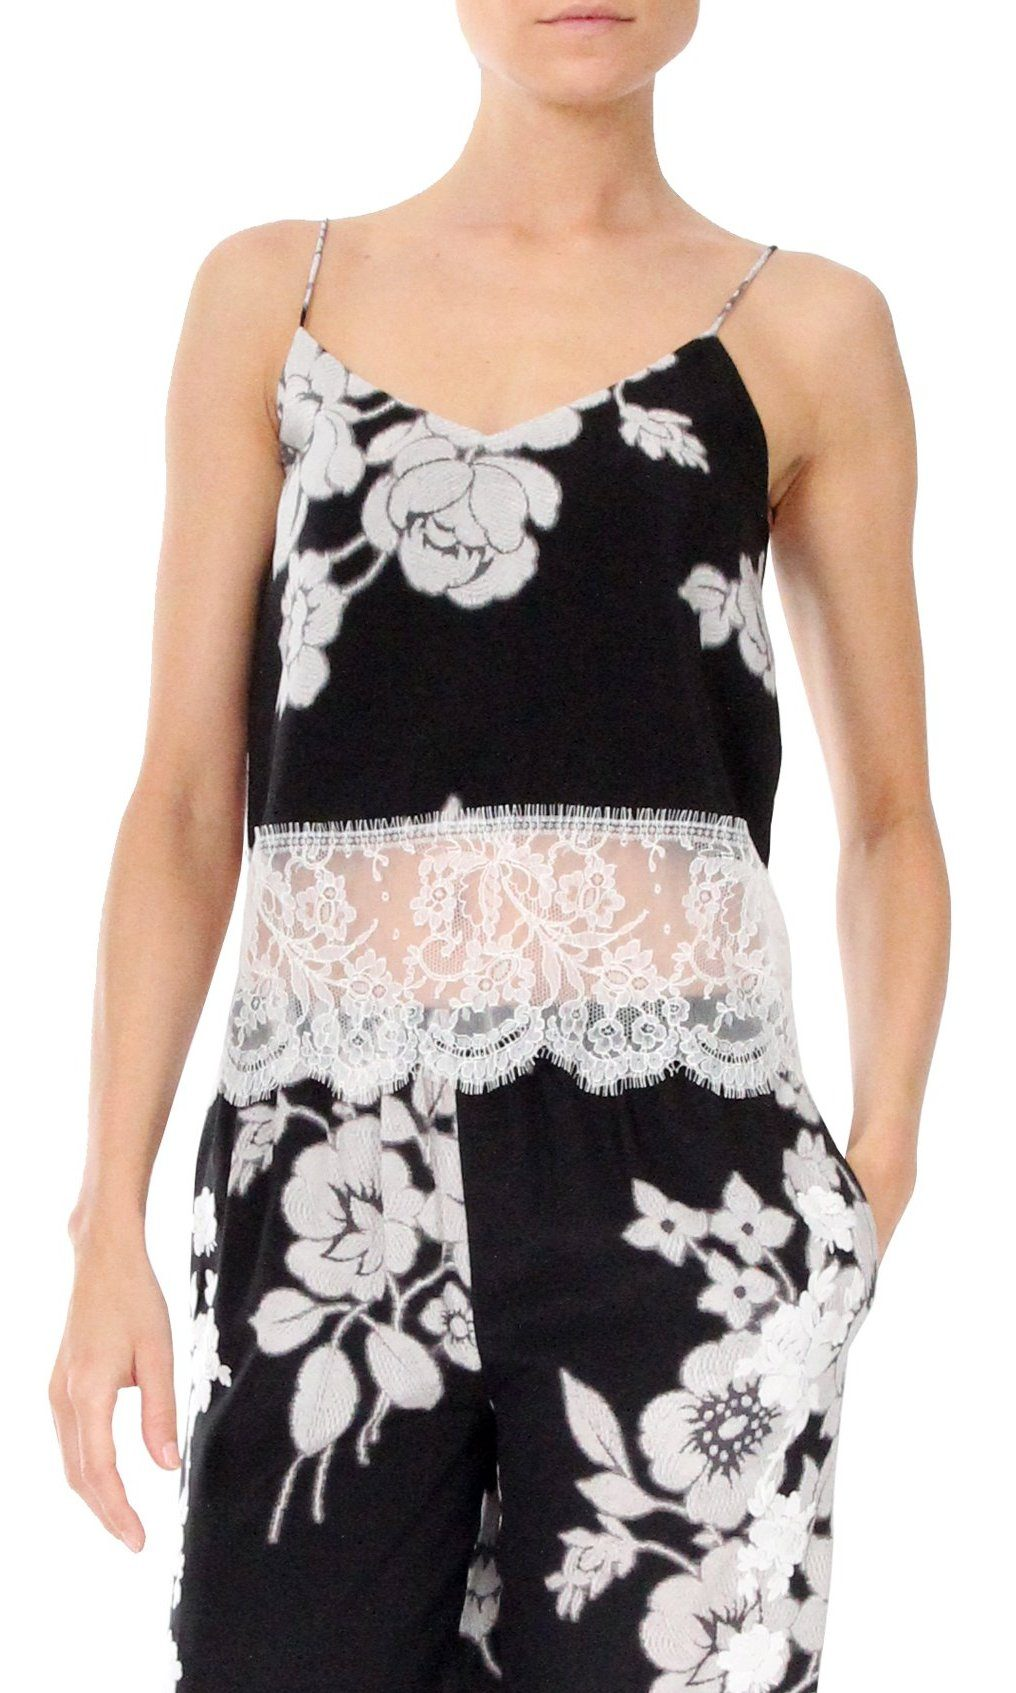 Short Cami with Lace Marie France Van Damme 0 Black White Rose